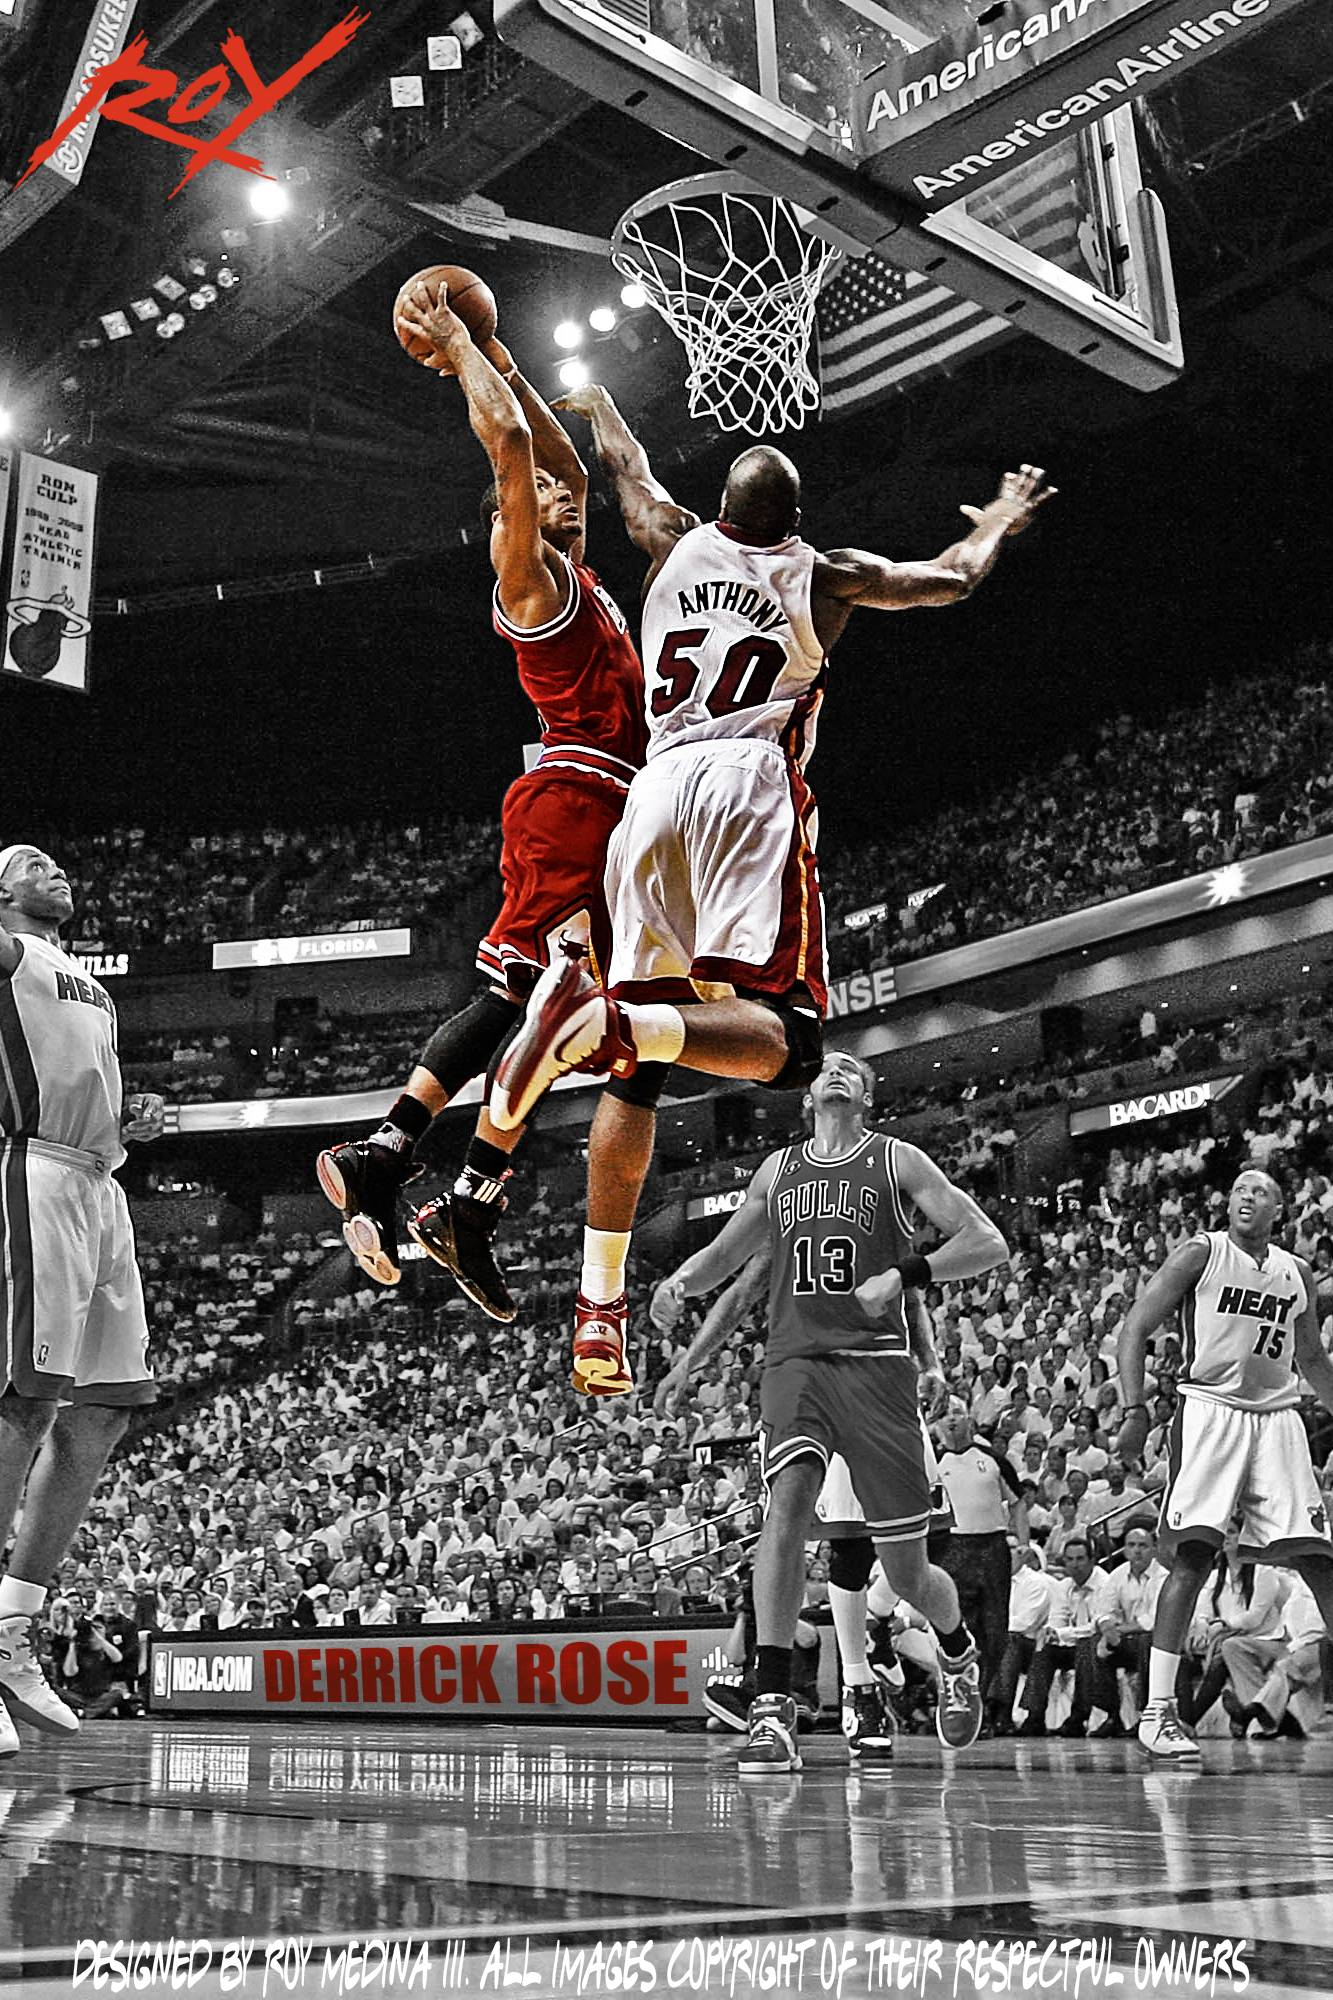 derrick rose wallpaper iphone - photo #19